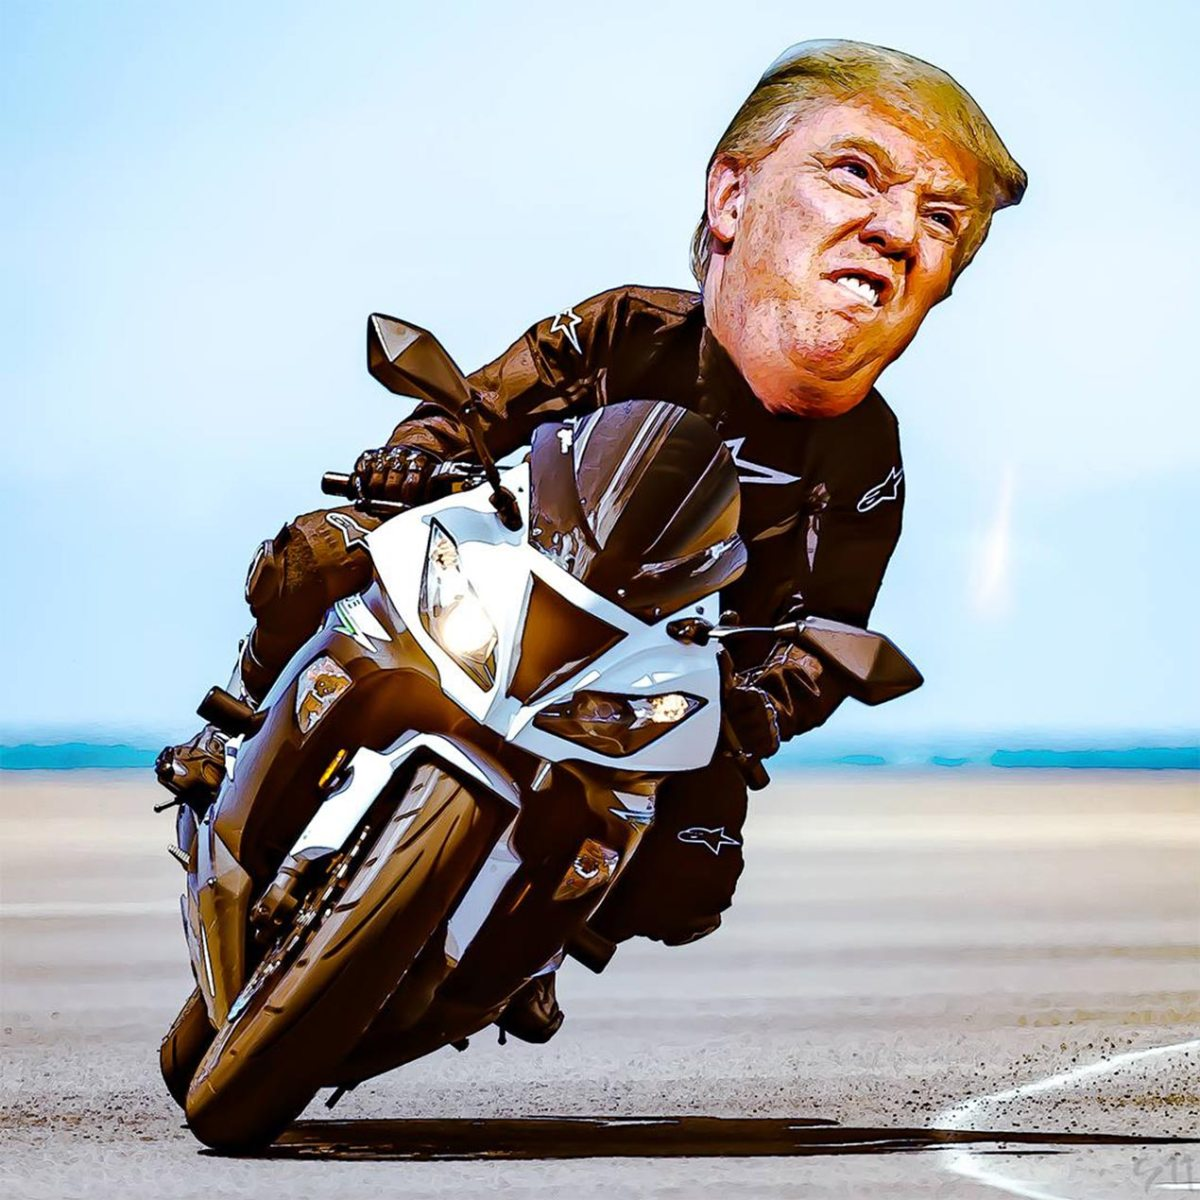 Kawasaki PR Rep Fired Over Trump TV Show Statements